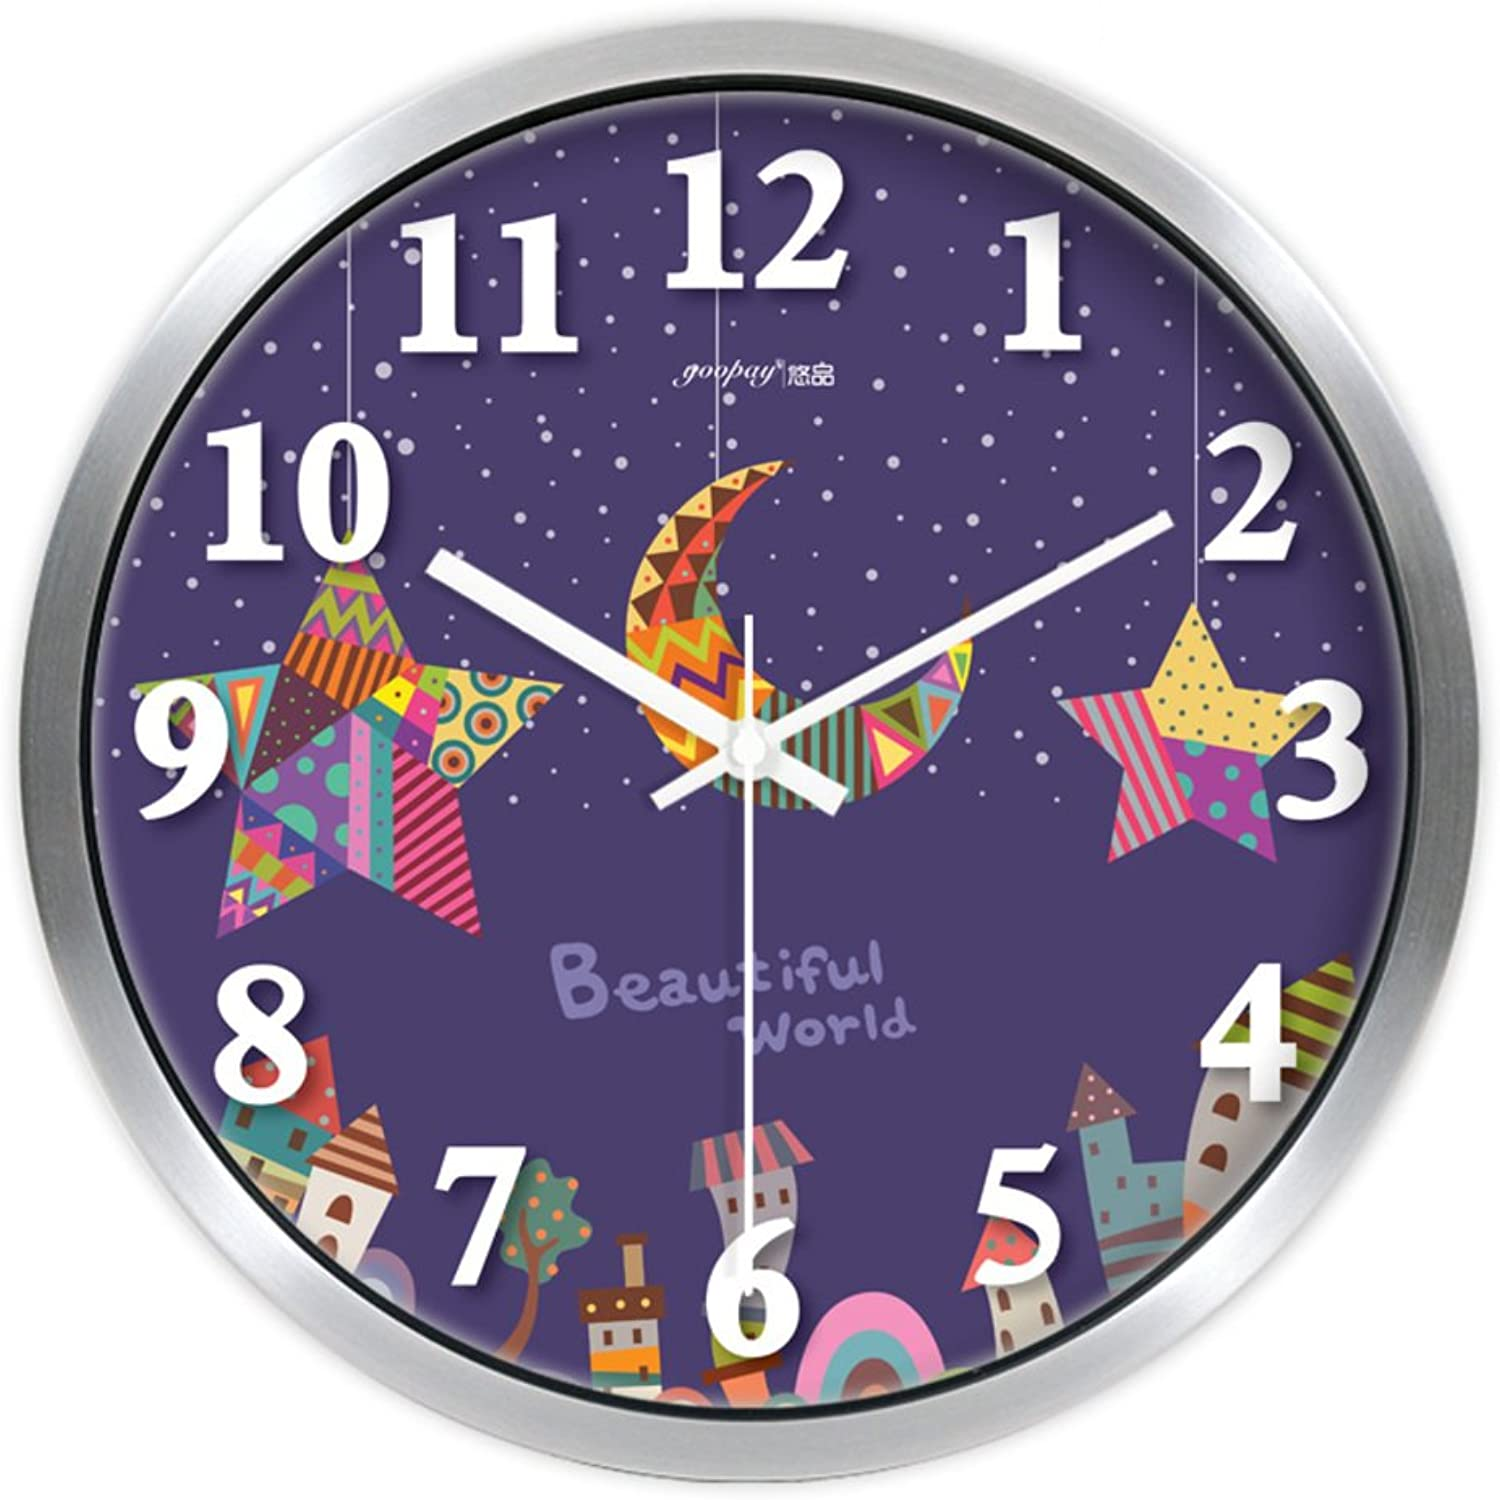 Wall clock bracket clock System clock hgoldloge hgoldlogium quartz clock crystalCartoon creative decorative wall clock  living room clocks bedroom quiet wall charts-B 14inch